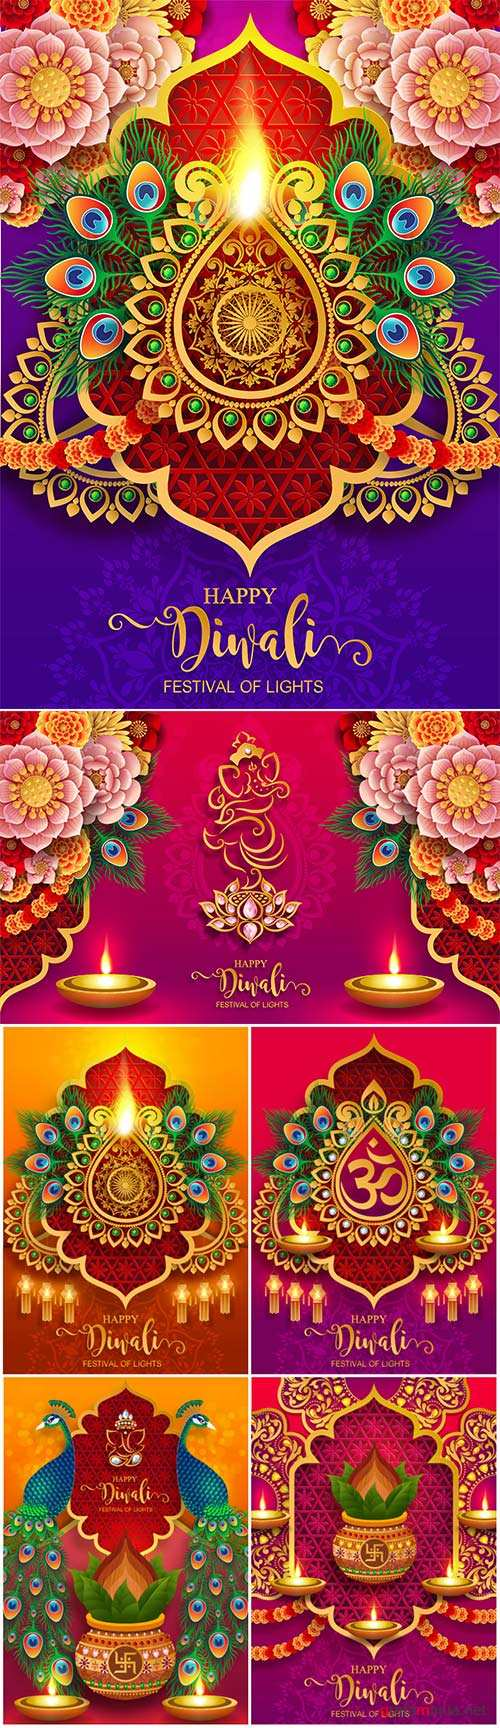 Happy Diwali festival vector card with gold diya patterned